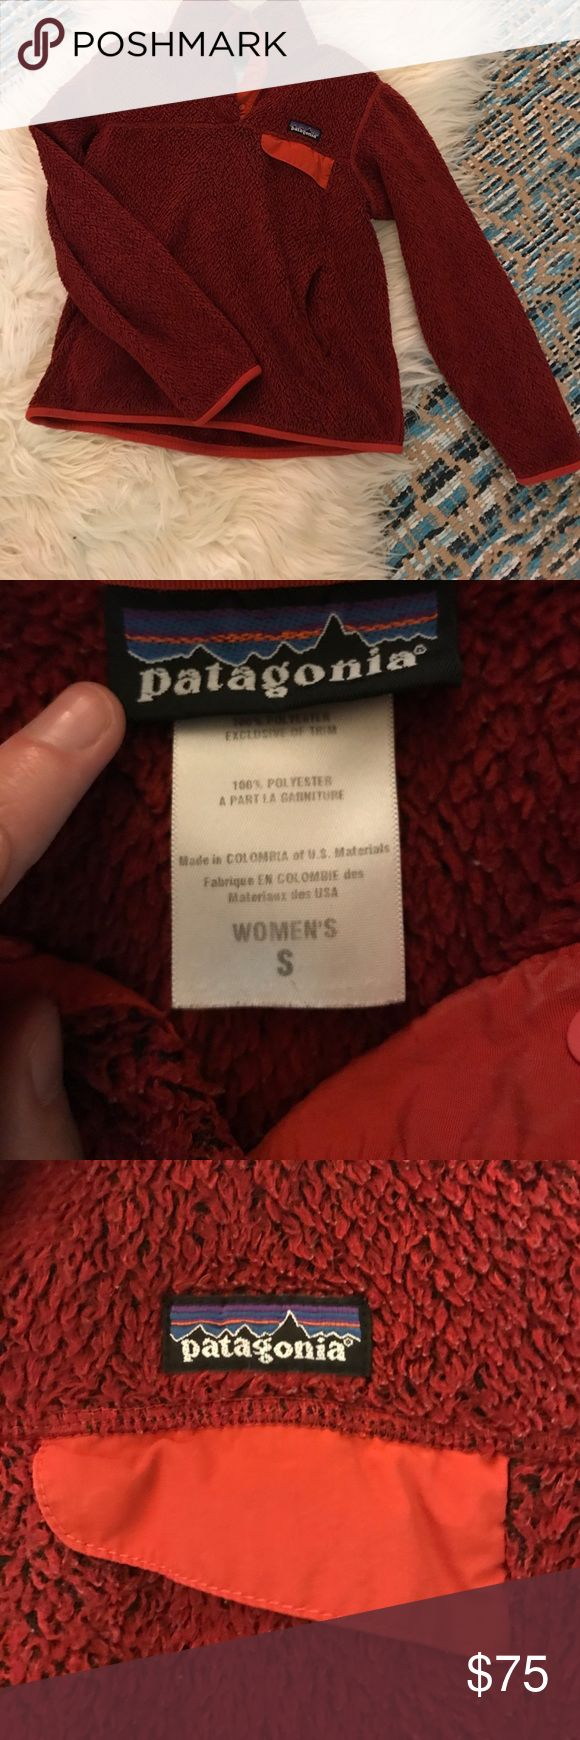 Patagonia - Red Women's Pullover Small Patagonia - Red Women's Pullover Small. Still in great condition. I have multiple of these in different colors and they are all well loved. Patagonia Tops Sweatshirts & Hoodies